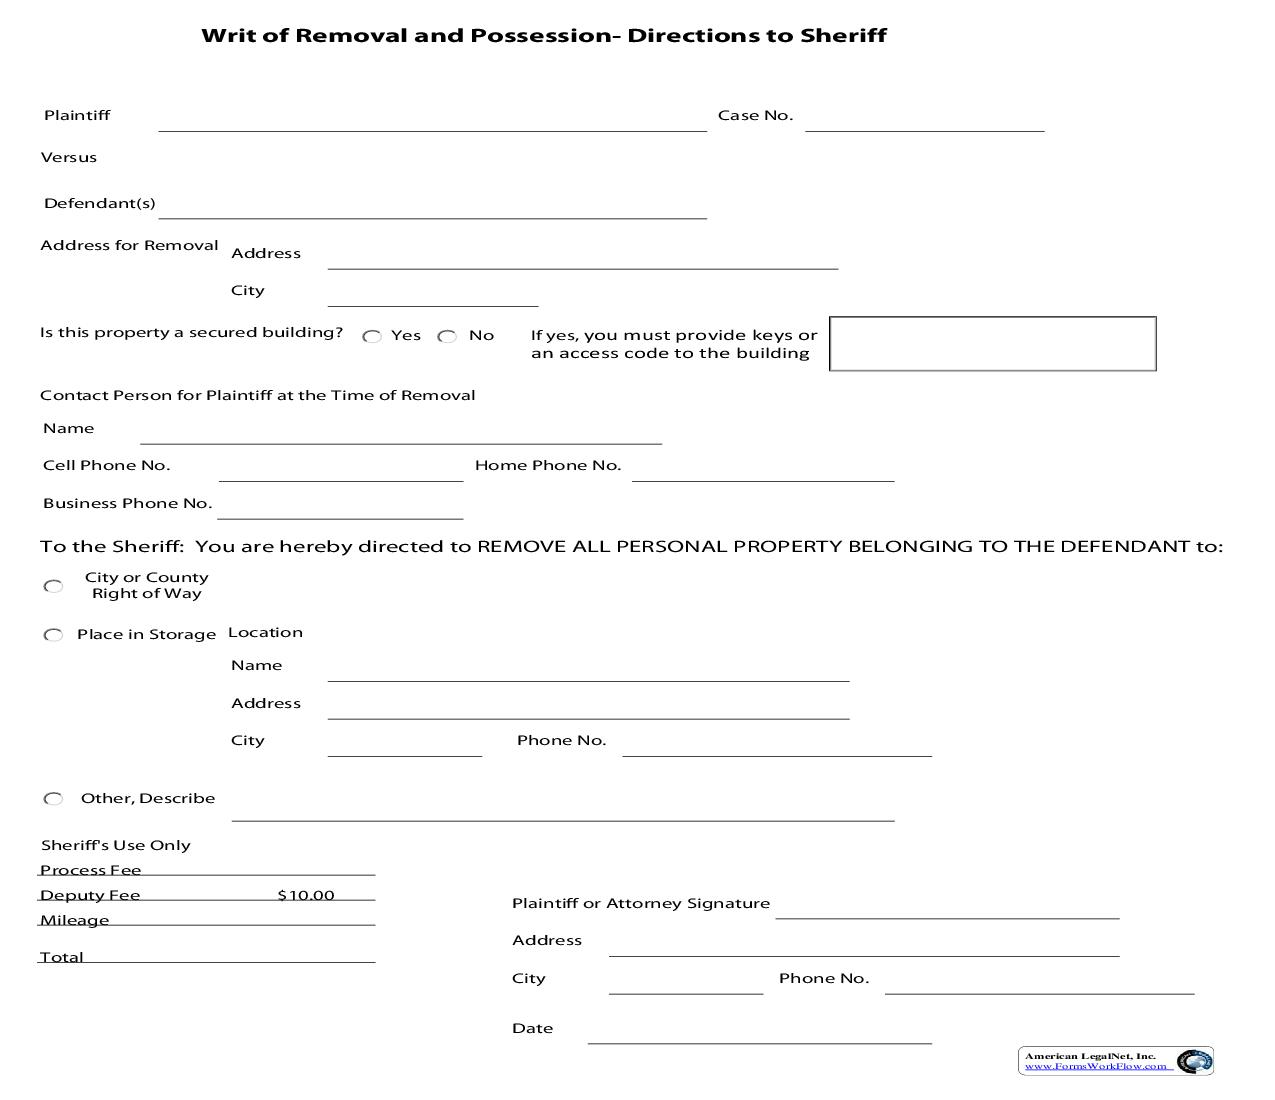 Writ Of Removal And Possession Directions For Service For Sheriff | Pdf Fpdf Doc Docx | Iowa